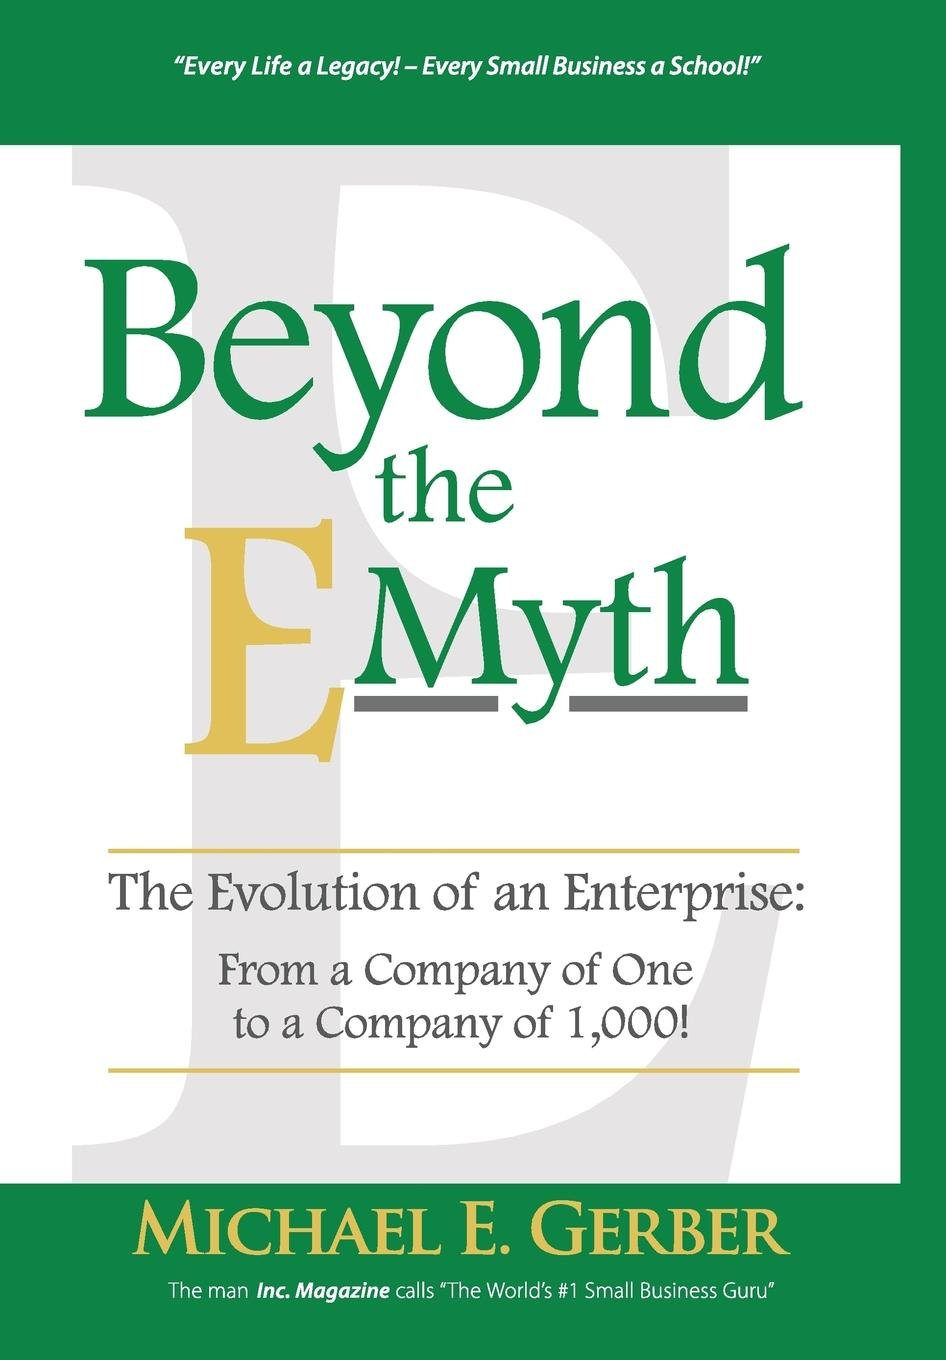 Beyond the E-Myth: The Evolution of an Enterprise: From a Company of One to  a Company of 1, 000!: Michael E Gerber: 9781618350480: Amazon.com: Books